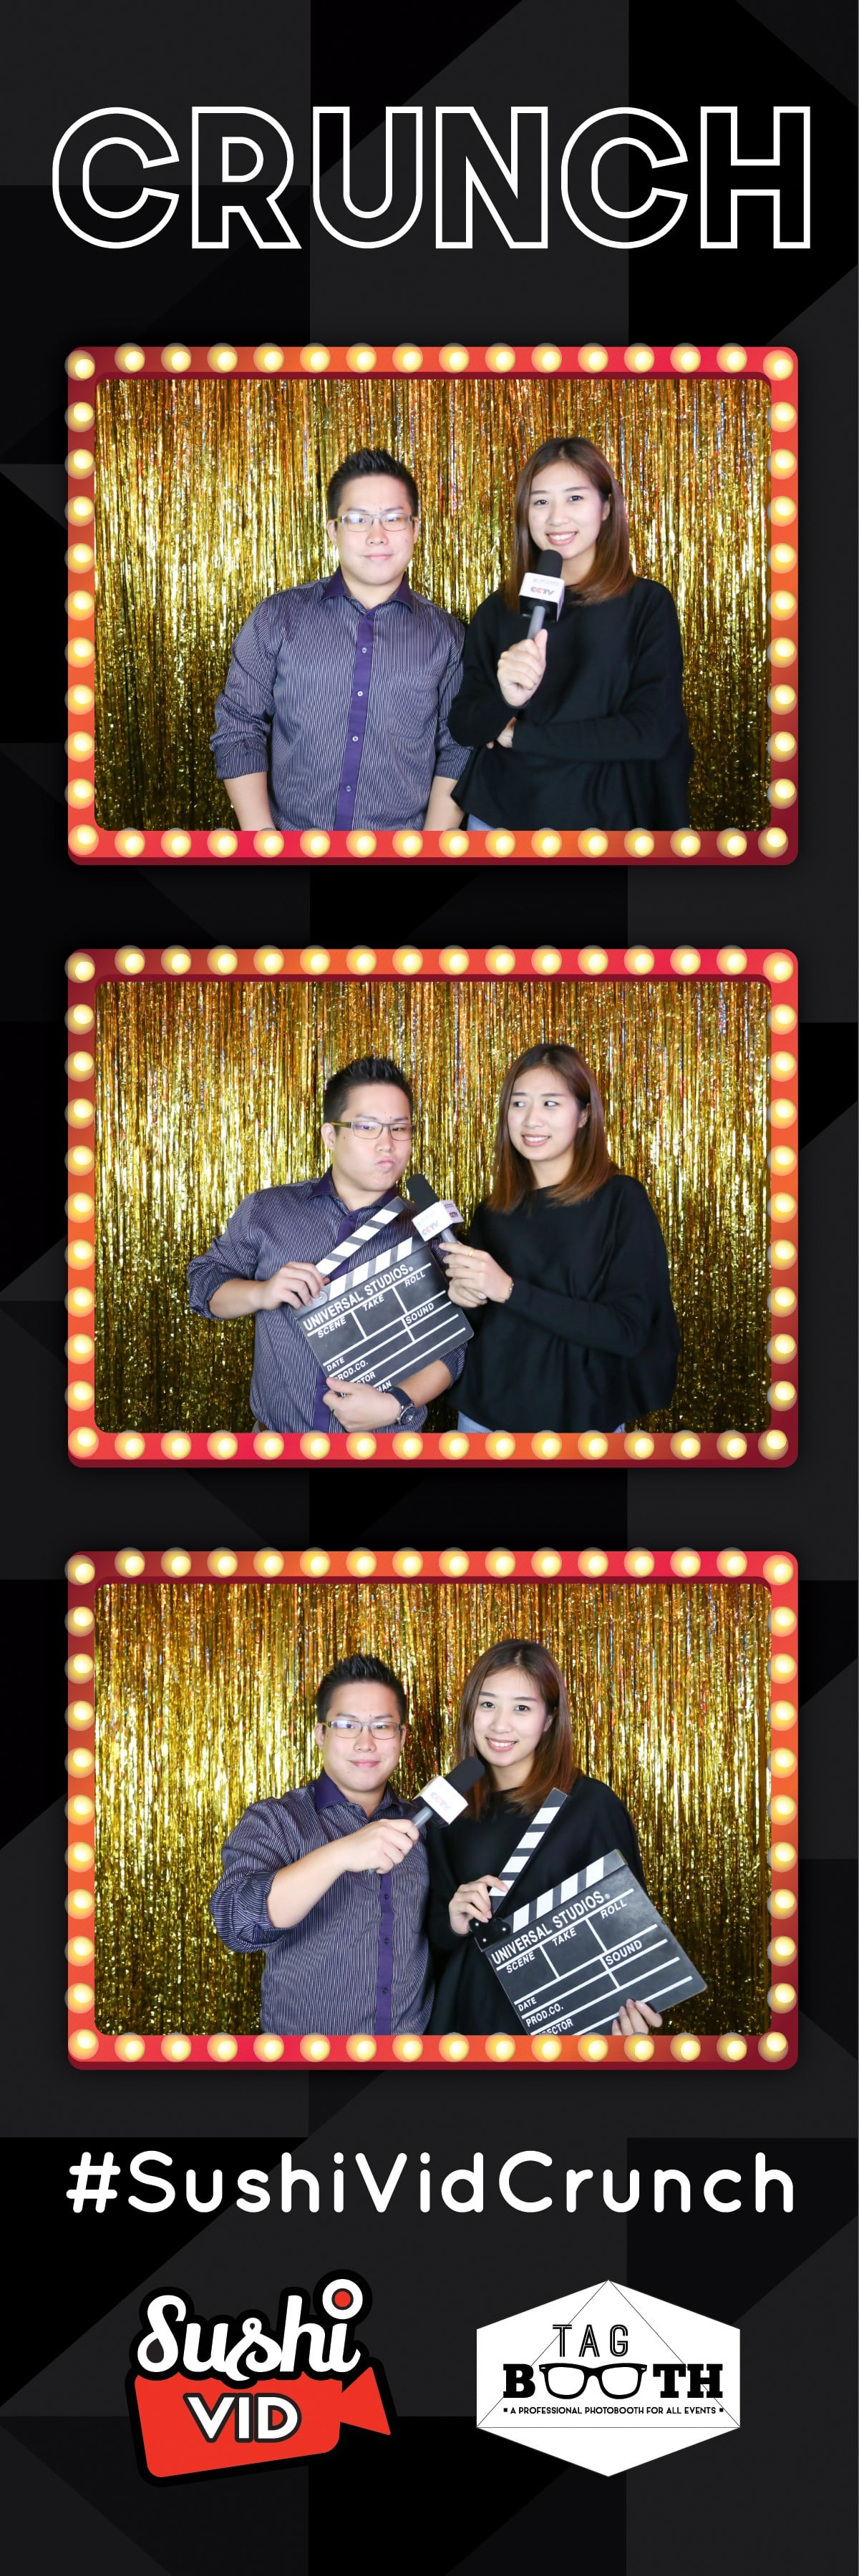 Sushivid+crunch+tagbooth1+28